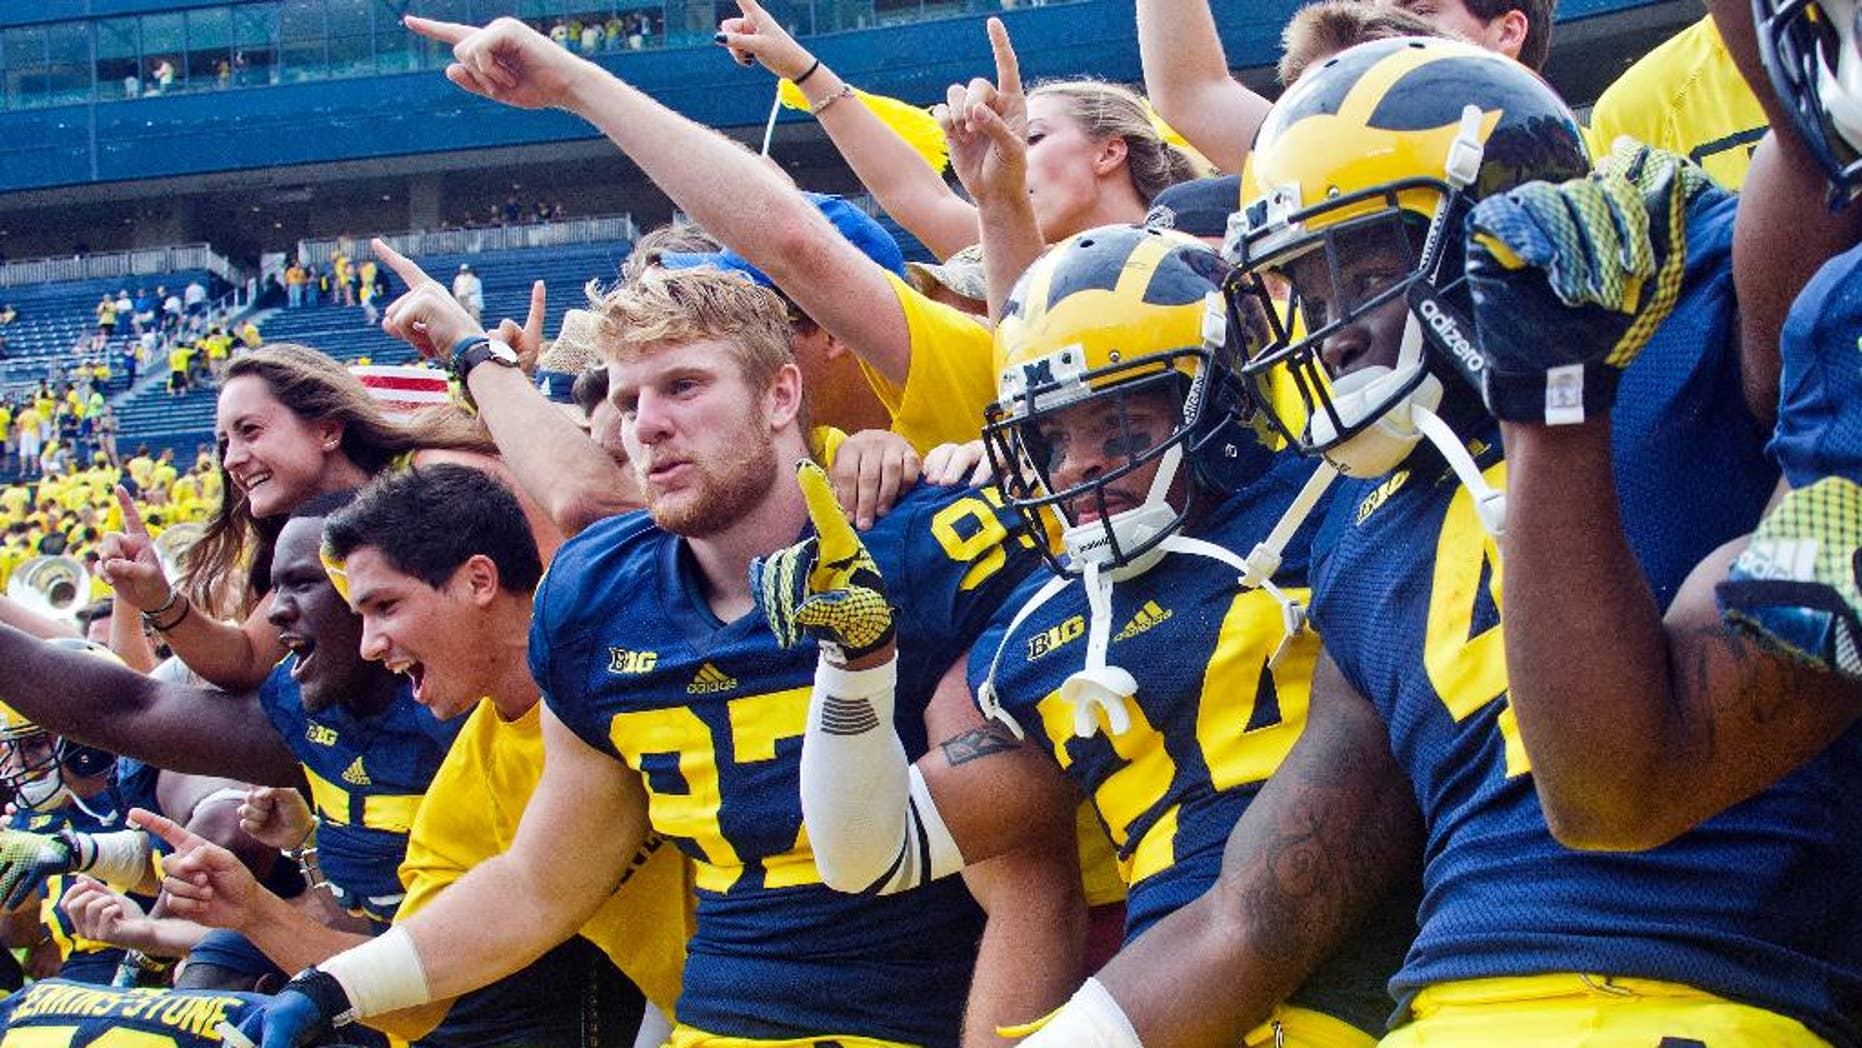 Michigan defensive end Brennen Beyer (97), defensive back Delonte Hollowell (24), and running back De'Veon Smith (4) celebrate in the stands with student fans after beating Appalachian State 52-14 in an NCAA college football game in Ann Arbor, Mich., Saturday, Aug. 30, 2014. (AP Photo/Tony Ding)